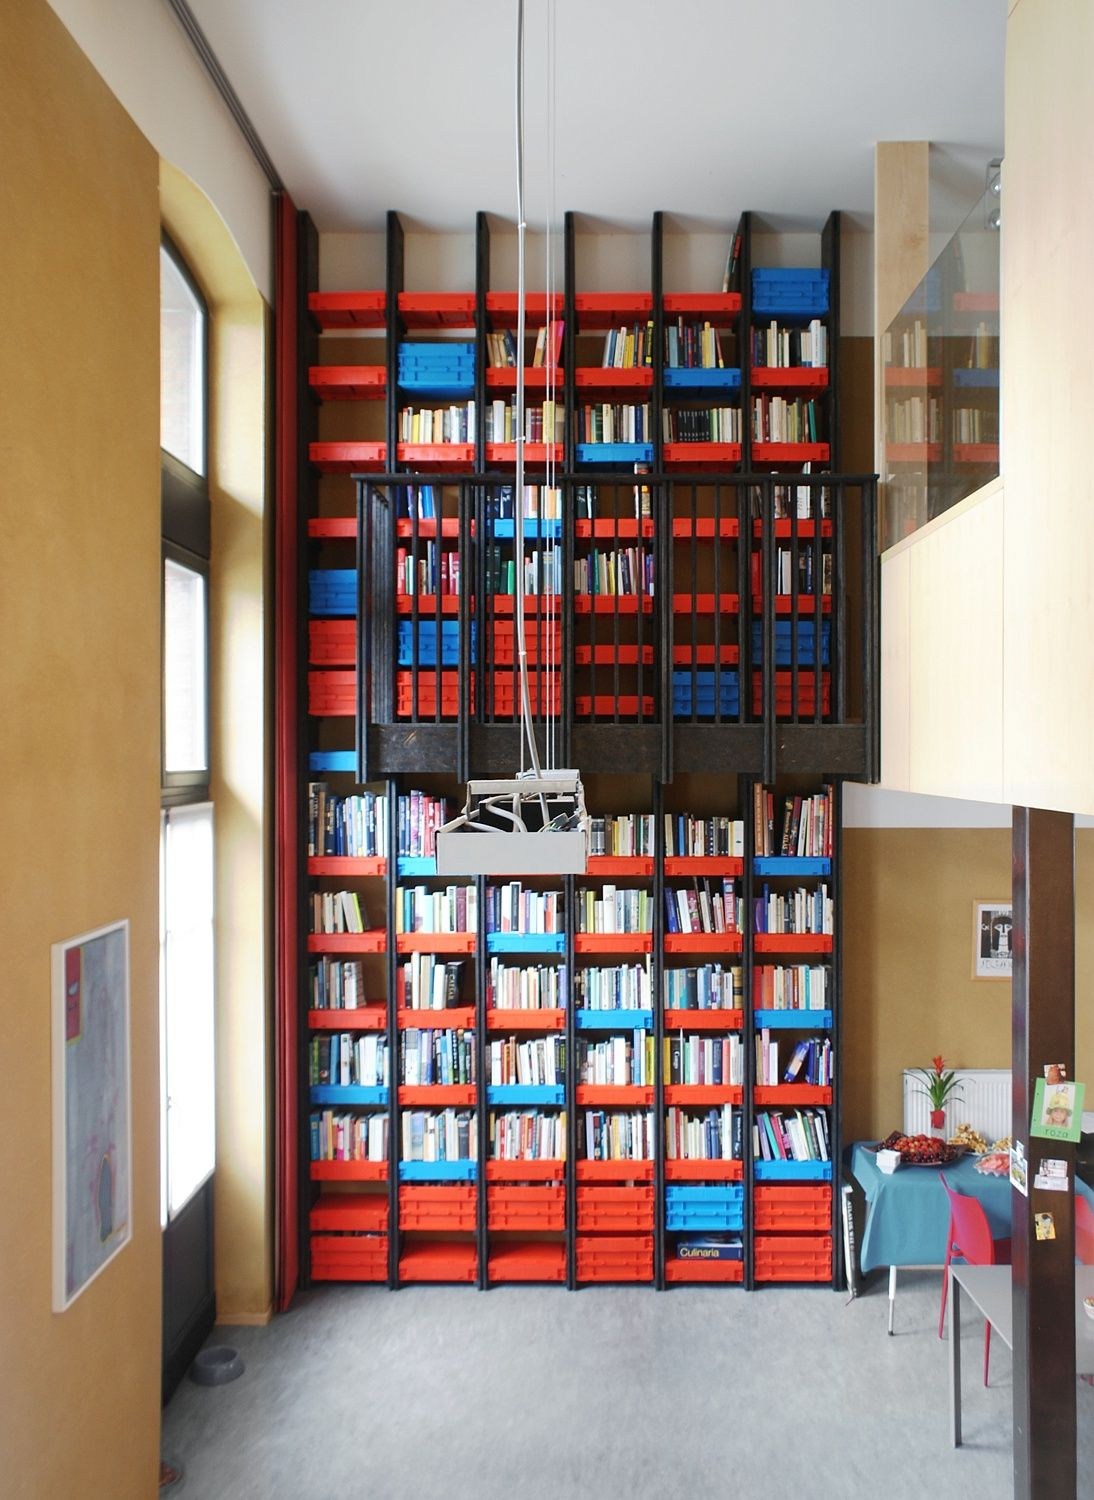 Incredible Giant Bookshelf Design From Floor To Ceiling With Red And Blue Racks Completed Simple